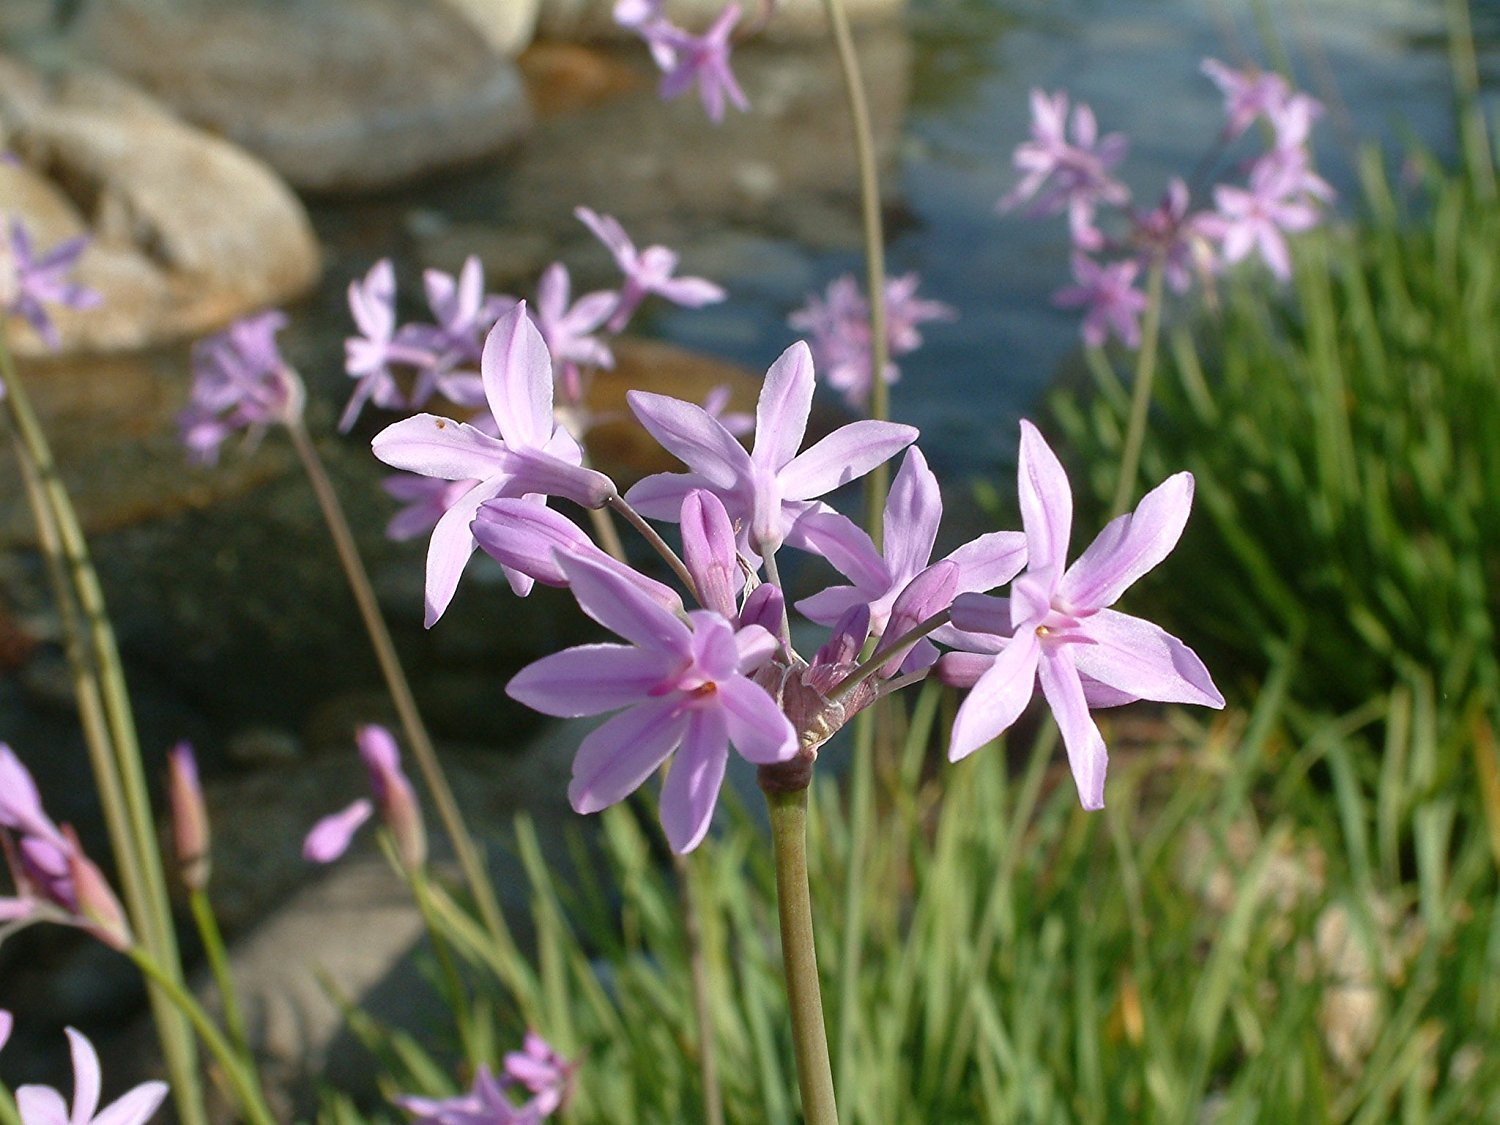 Society Garlic Qty 60 Live Plants Tulbaghia Violacea Ground Cover Perennial